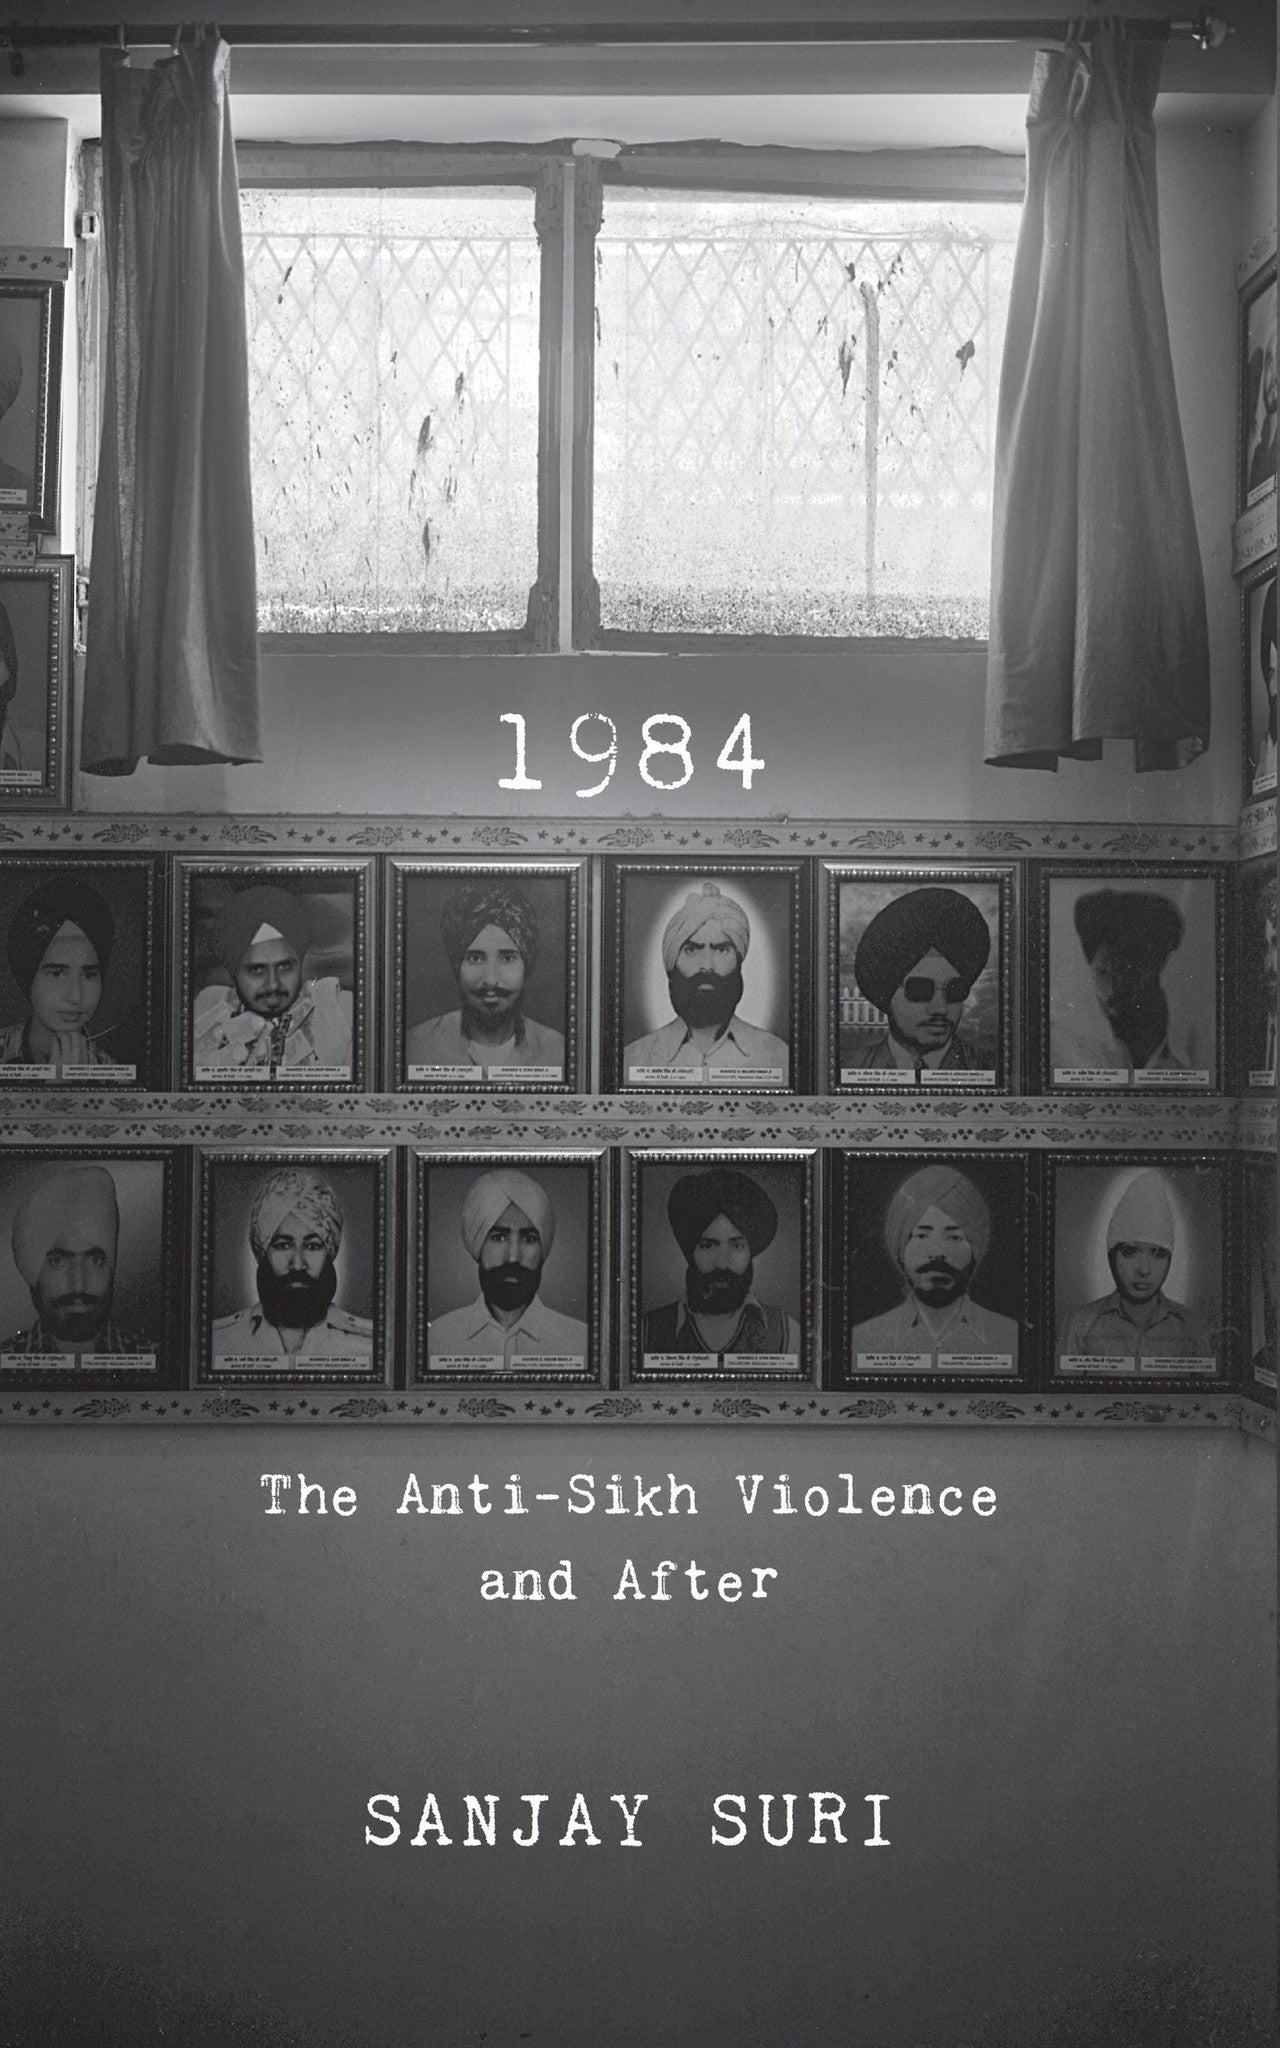 1984 - The Anti-Sikh Violence and After